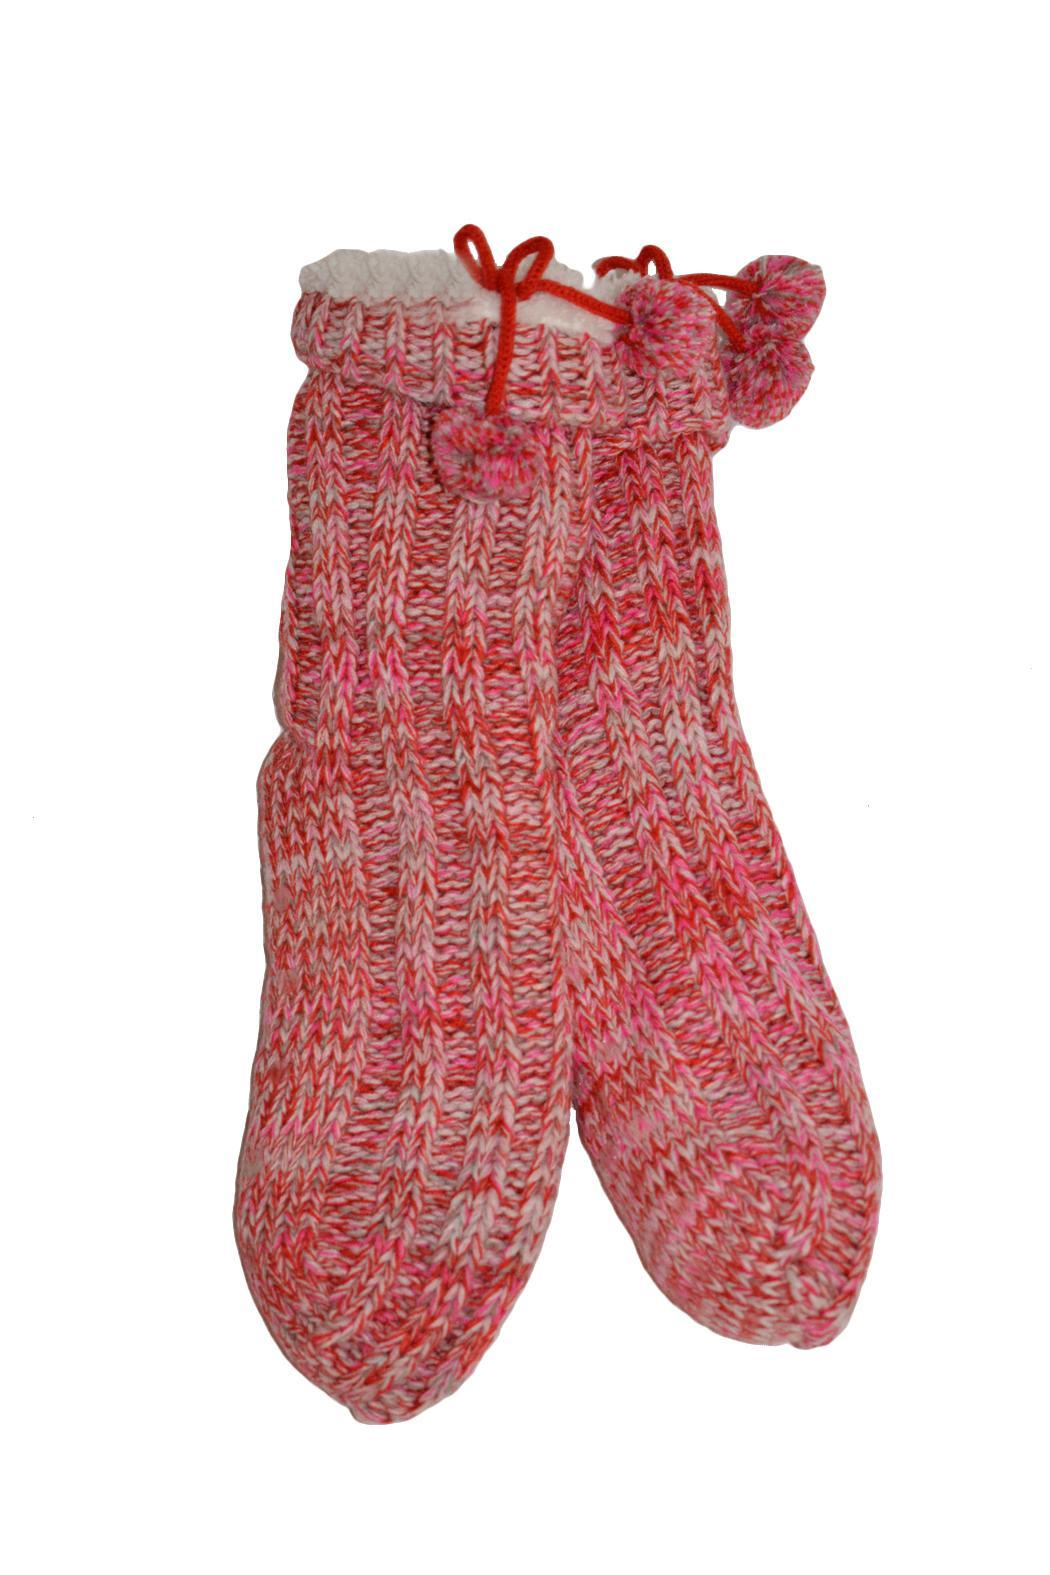 Leg Moque Long Slipper Socks From Massachusetts By Lyn Evans U2014 Shoptiques